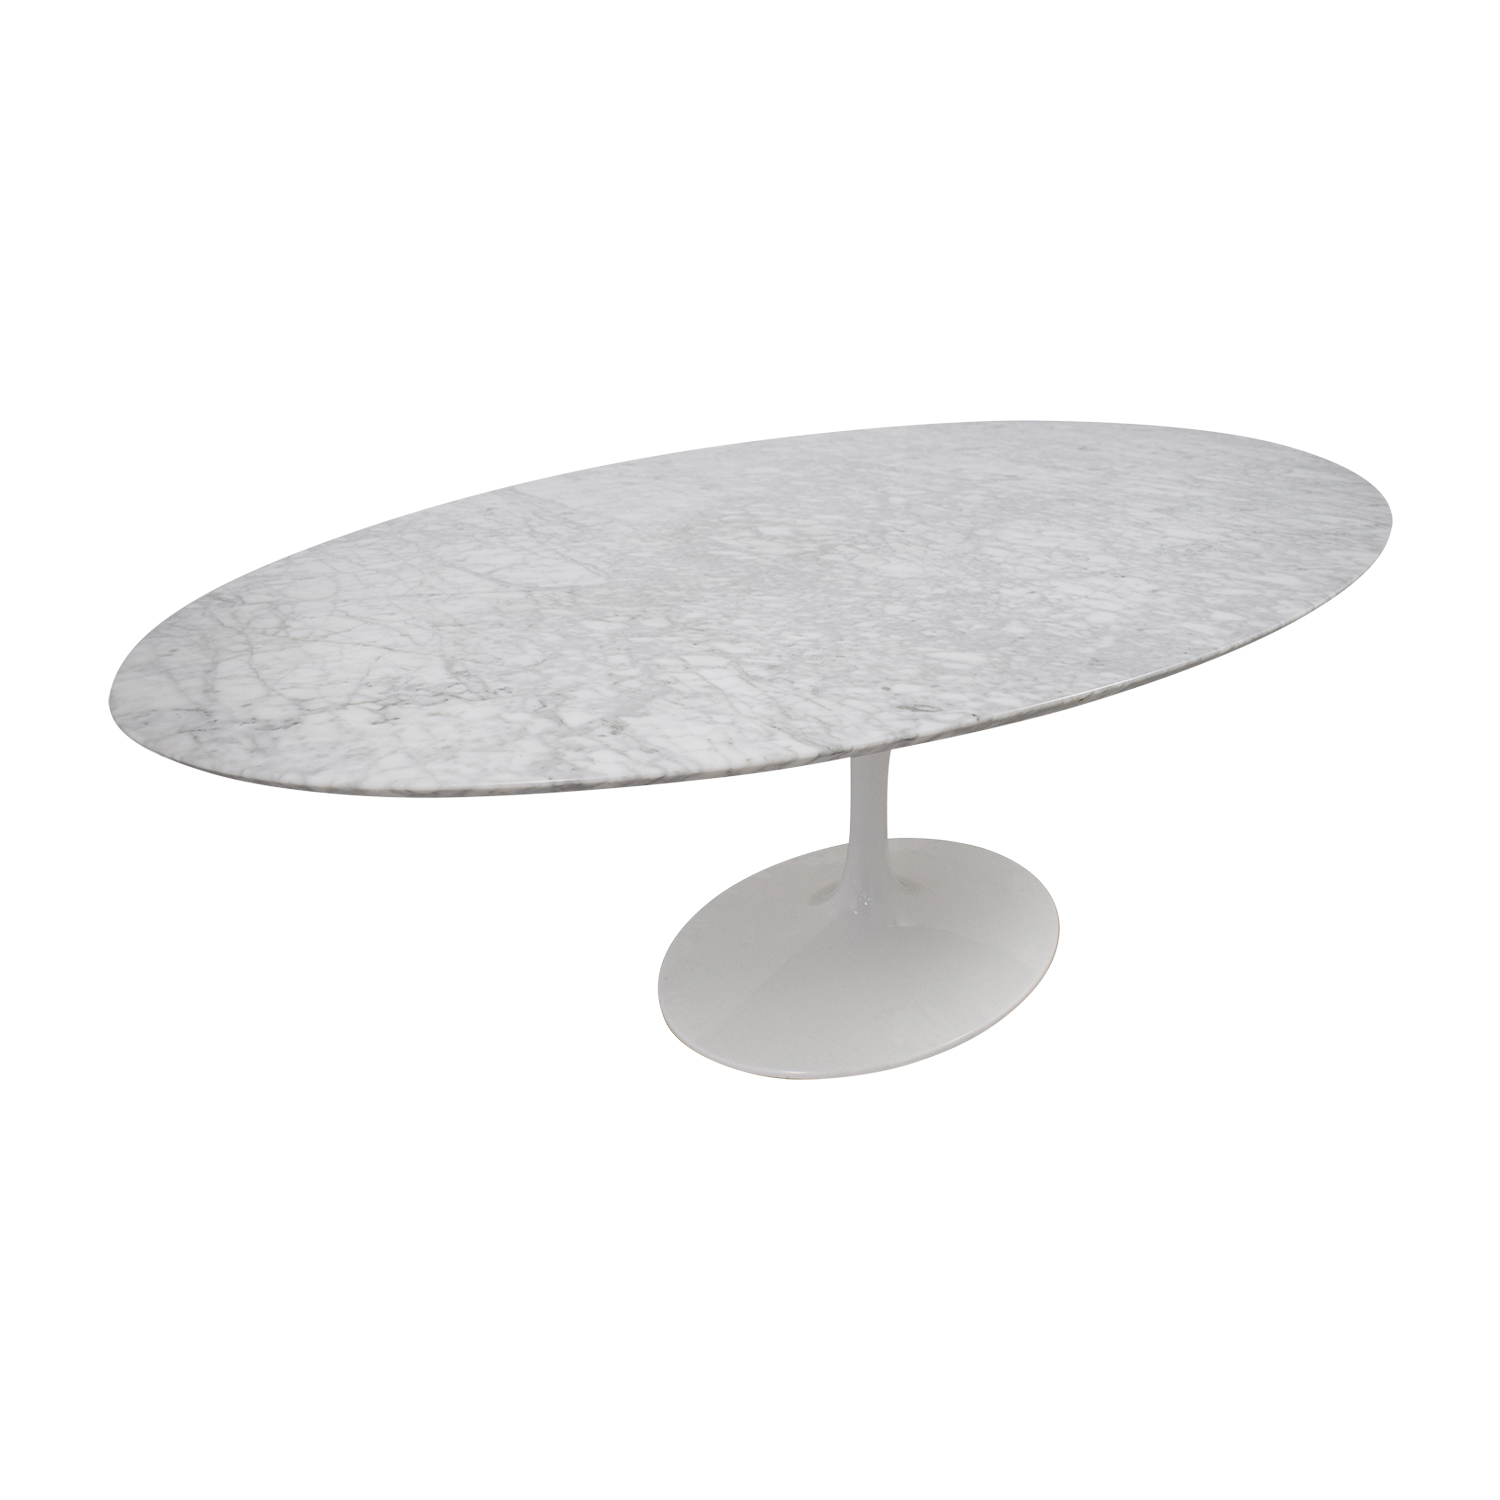 Tulip Oval Table in White Marble price